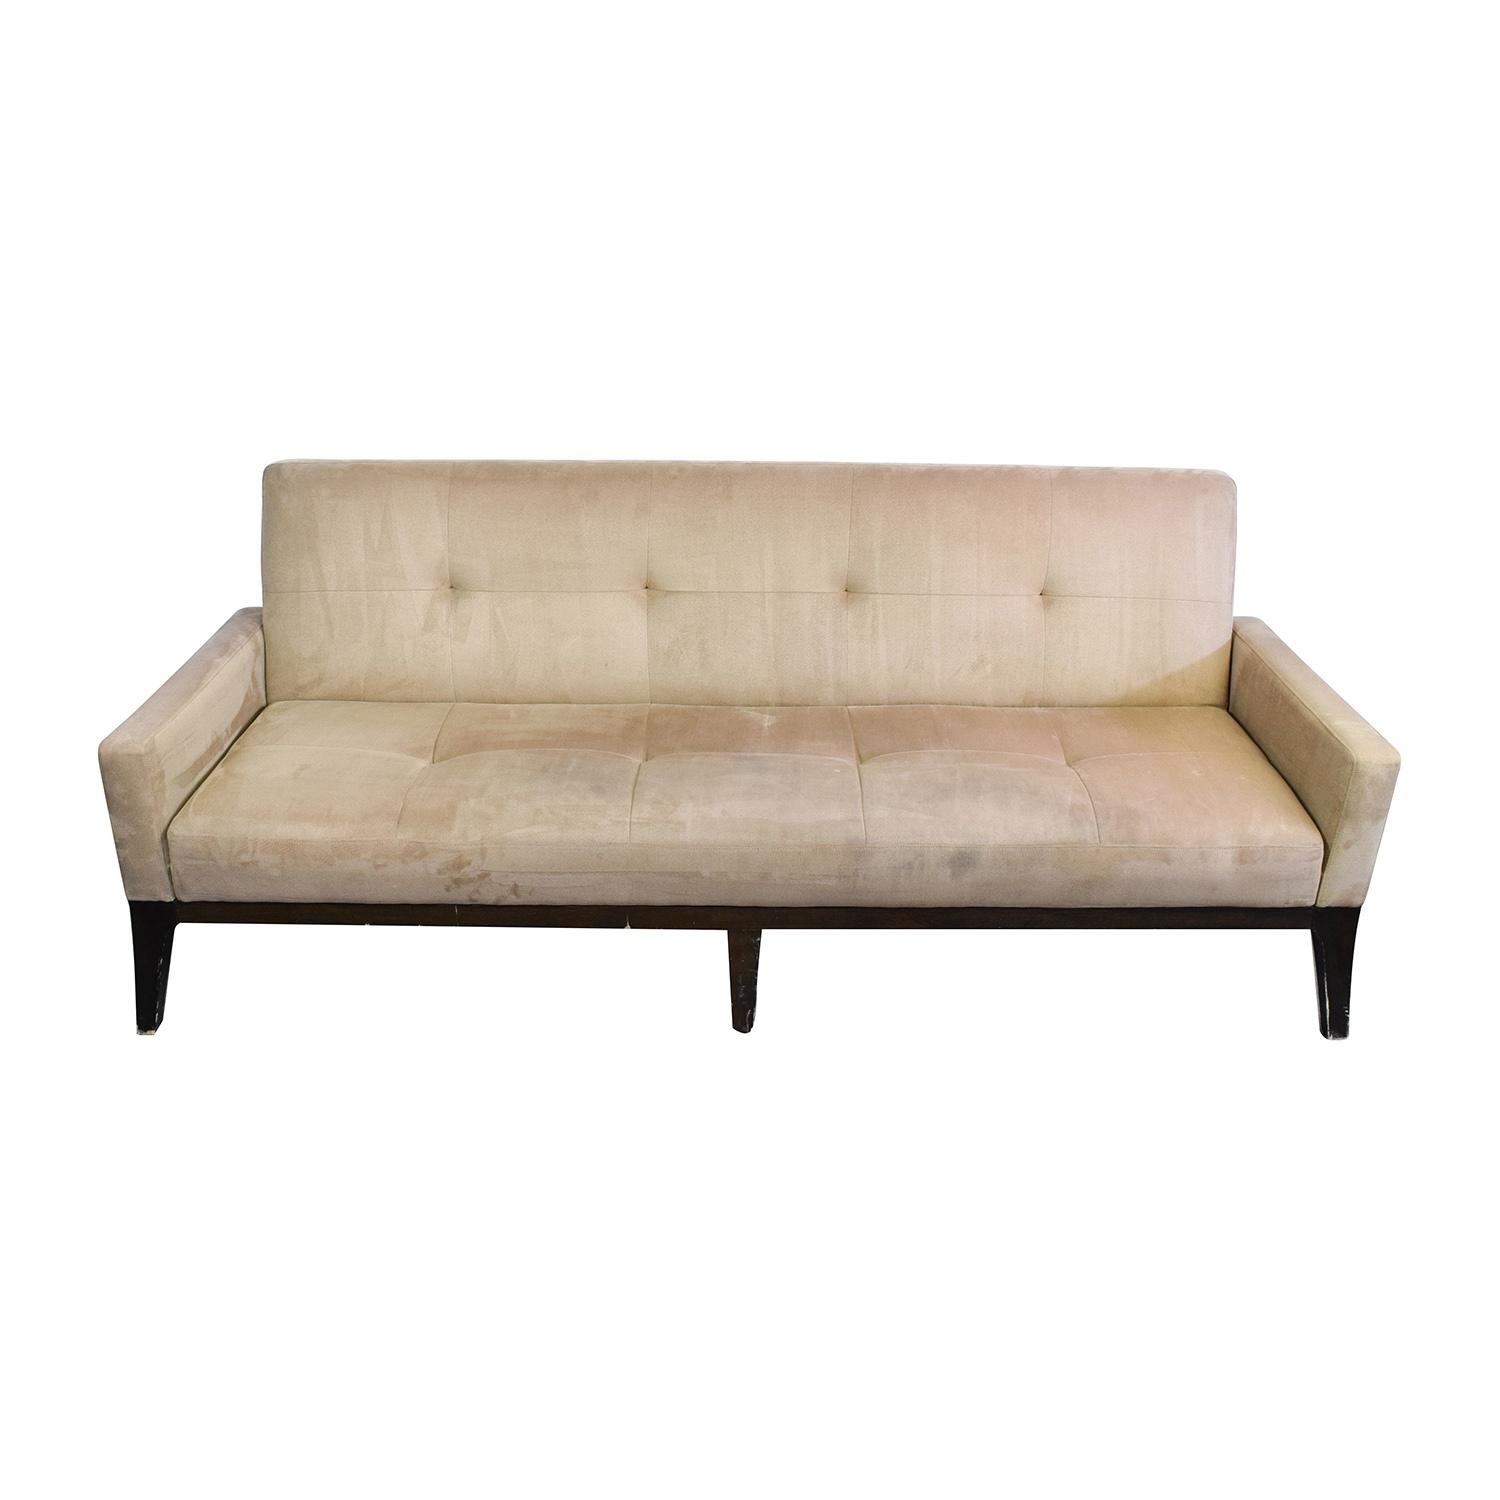 82% Off – Crate And Barrel Crate & Barrel Beige Tufted Futon Sofa Regarding Crate And Barrel Futon Sofas (View 3 of 20)